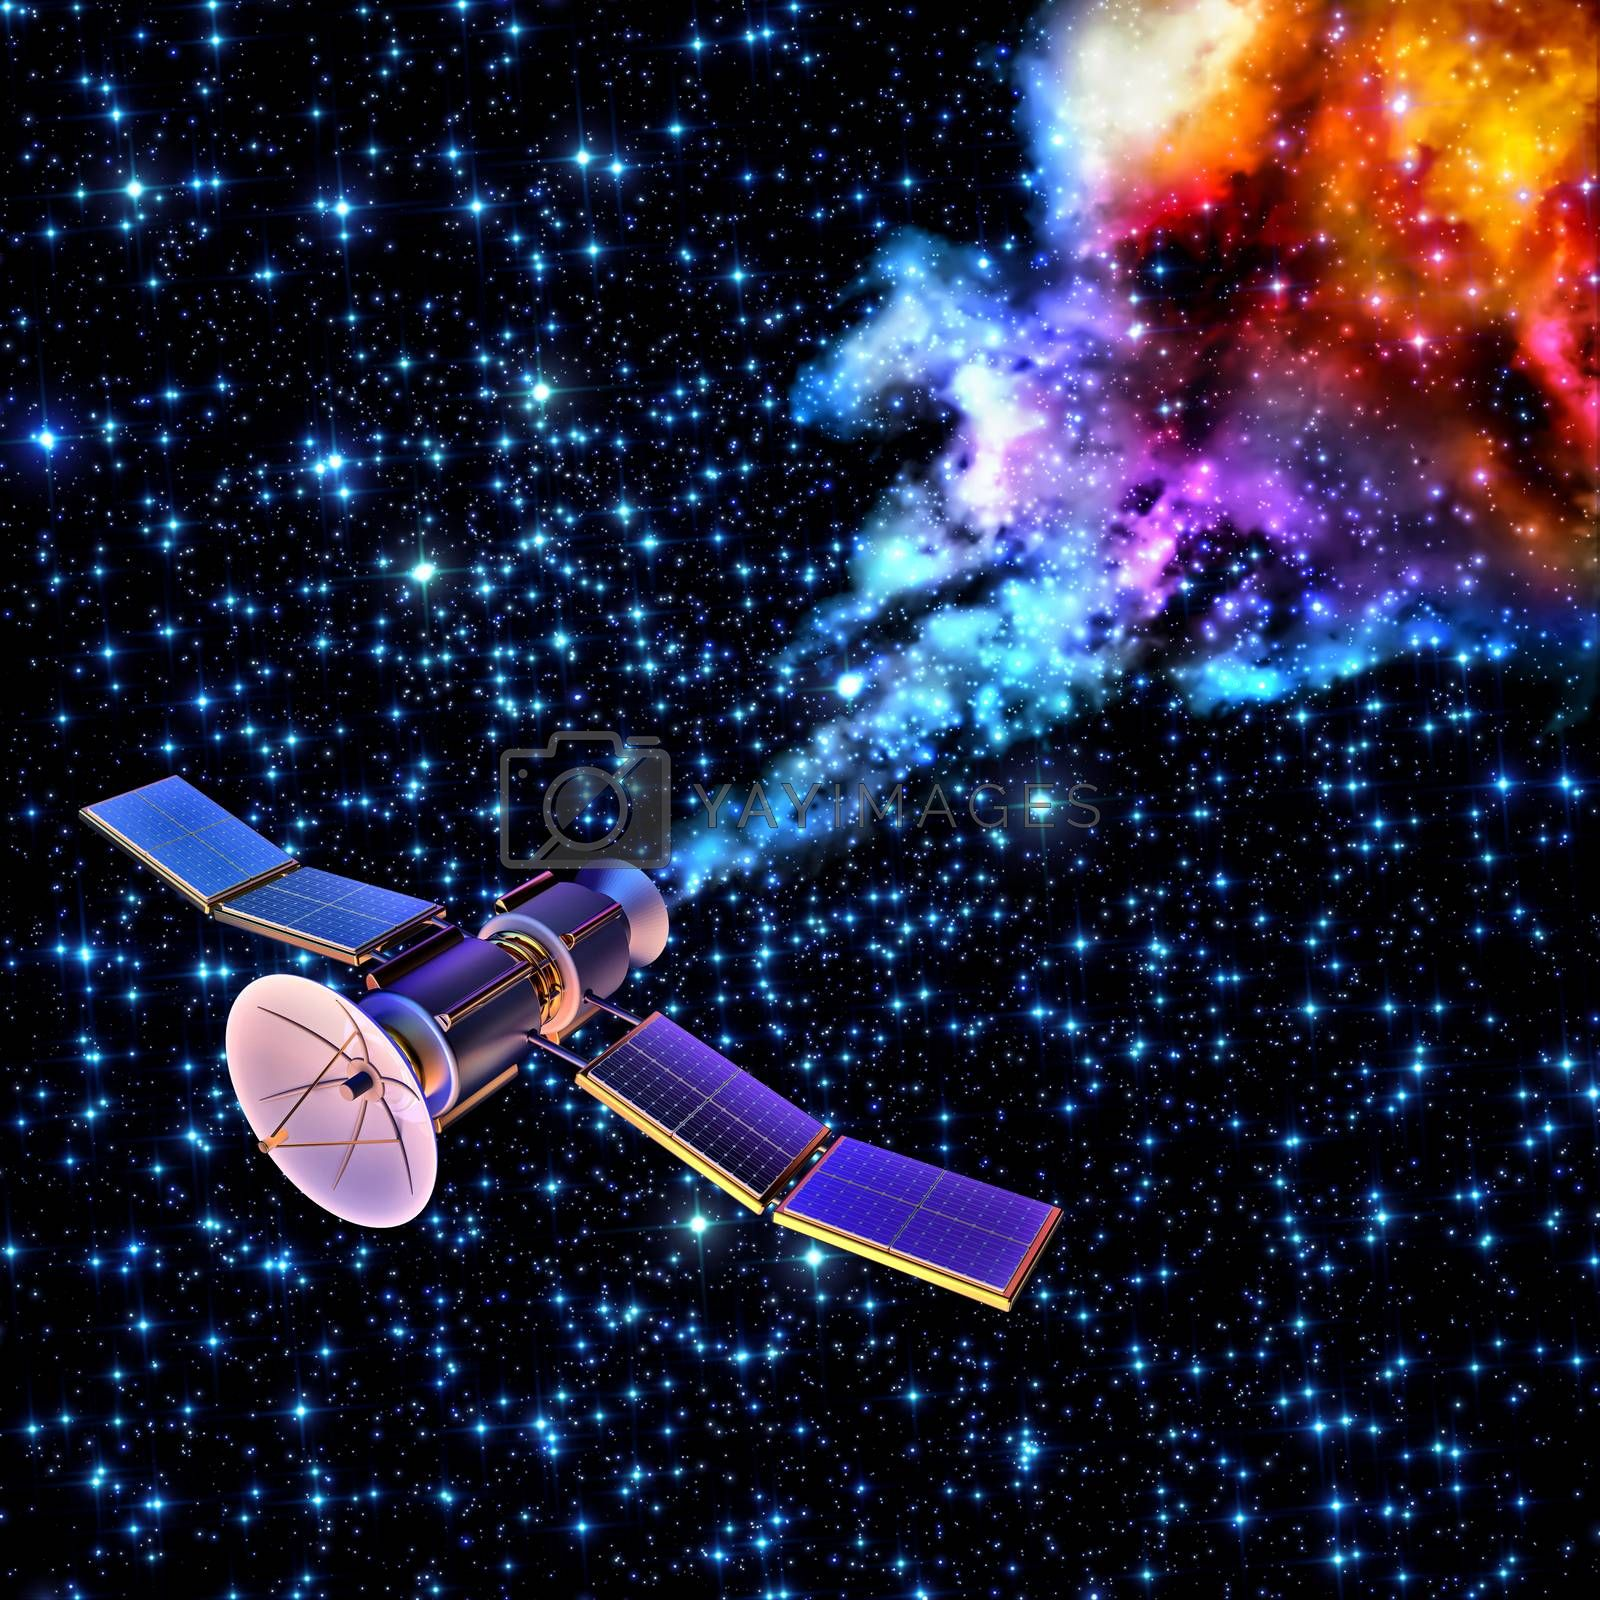 3D model of an artificial satellite of the Earth, equipped solar panels and parabolic satellite communications antenna, has burned up and fragmented when re-entered to the Earth's atmosphere